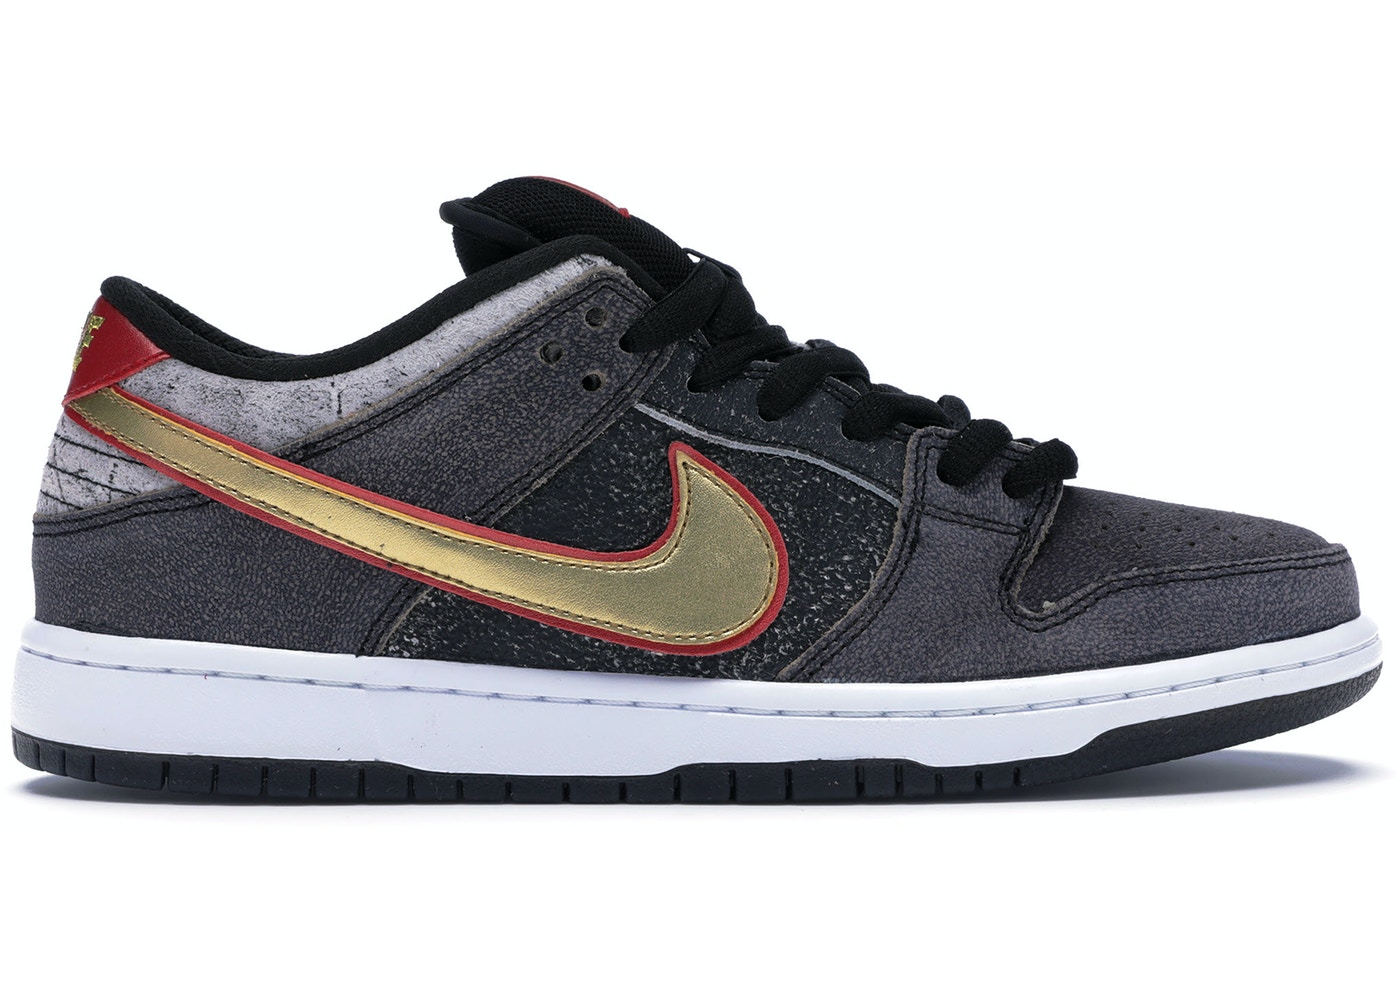 Nike SB Shoes - New Highest Bids a776185bf1